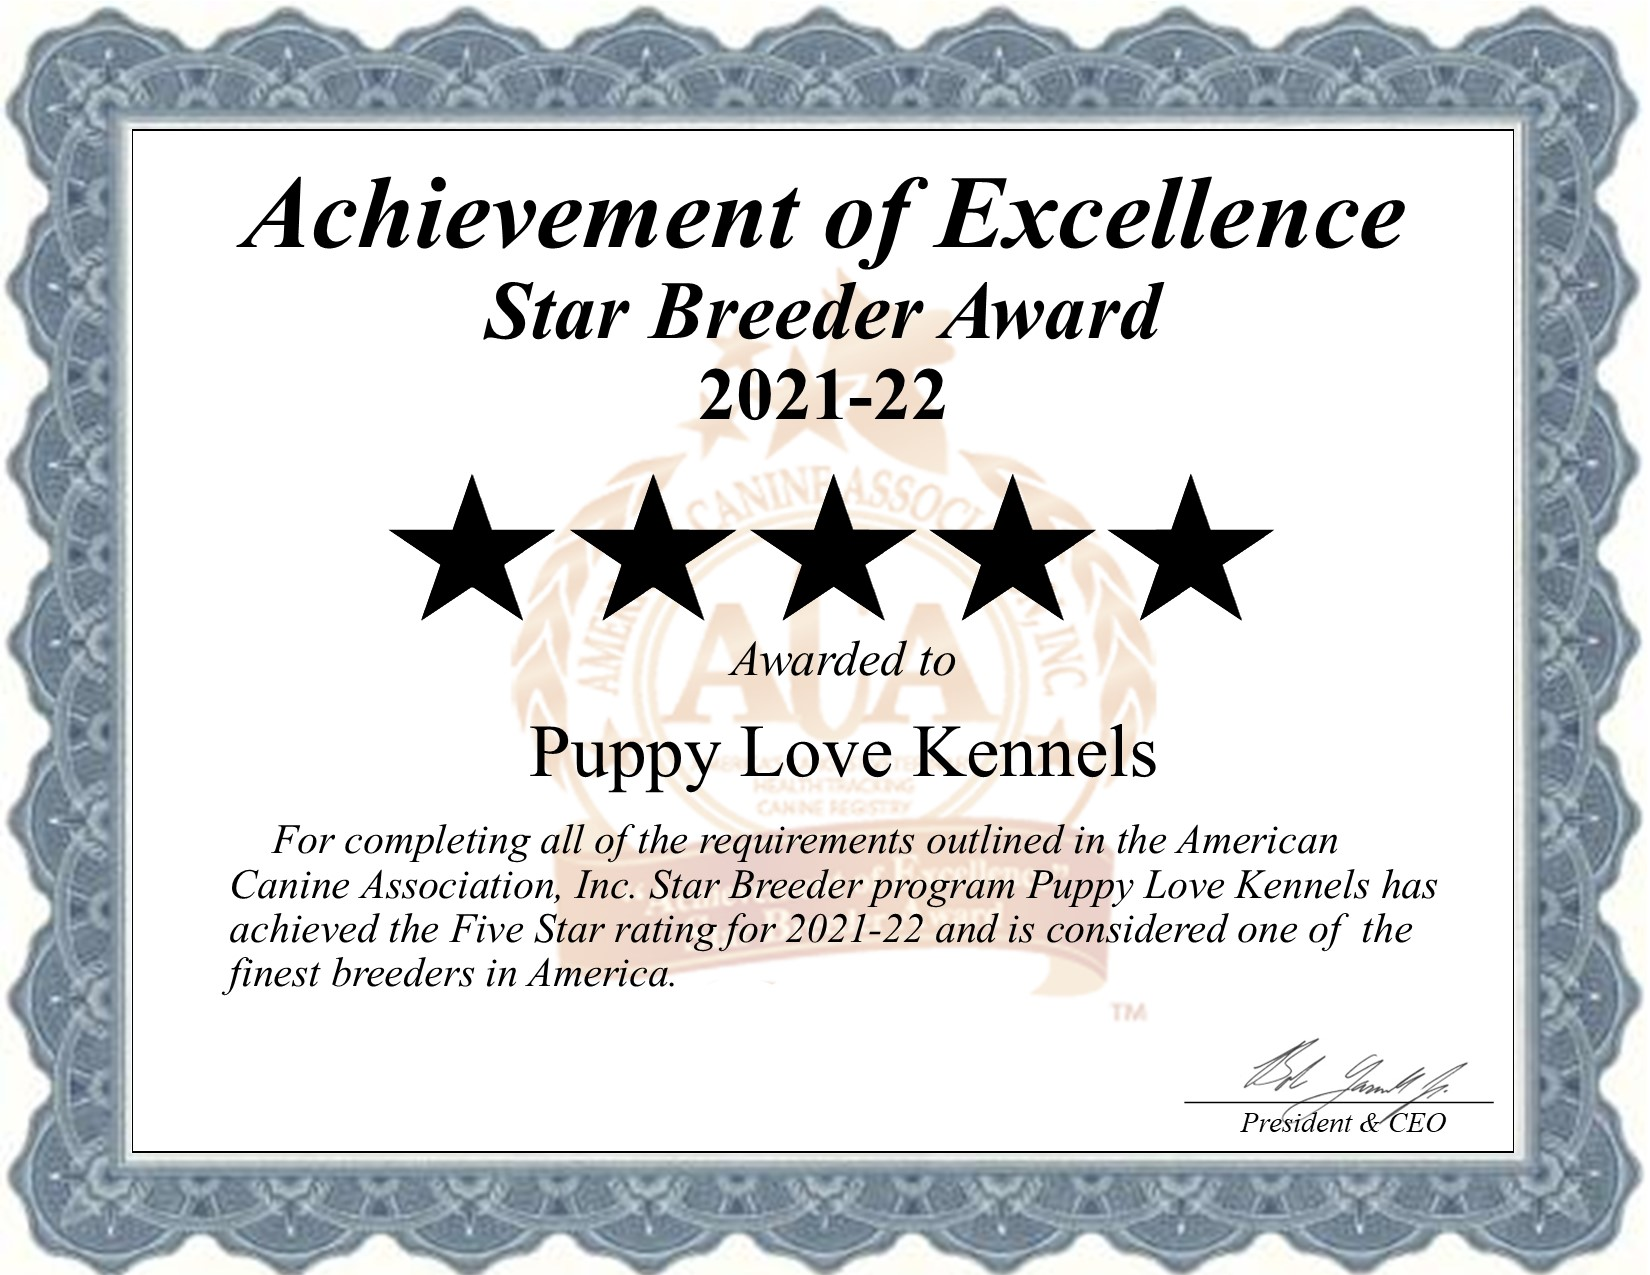 Puppy Love, Kennels, dog, breeder, star, certificate, Puppy Love-Kennels, Trenton, MO, Missouri, puppy, dog, kennels, mill, puppymill, usda, 5-star, aca, ica, registered, cocker-spaniel, cokapoo, 43-A-6314, 43A6314